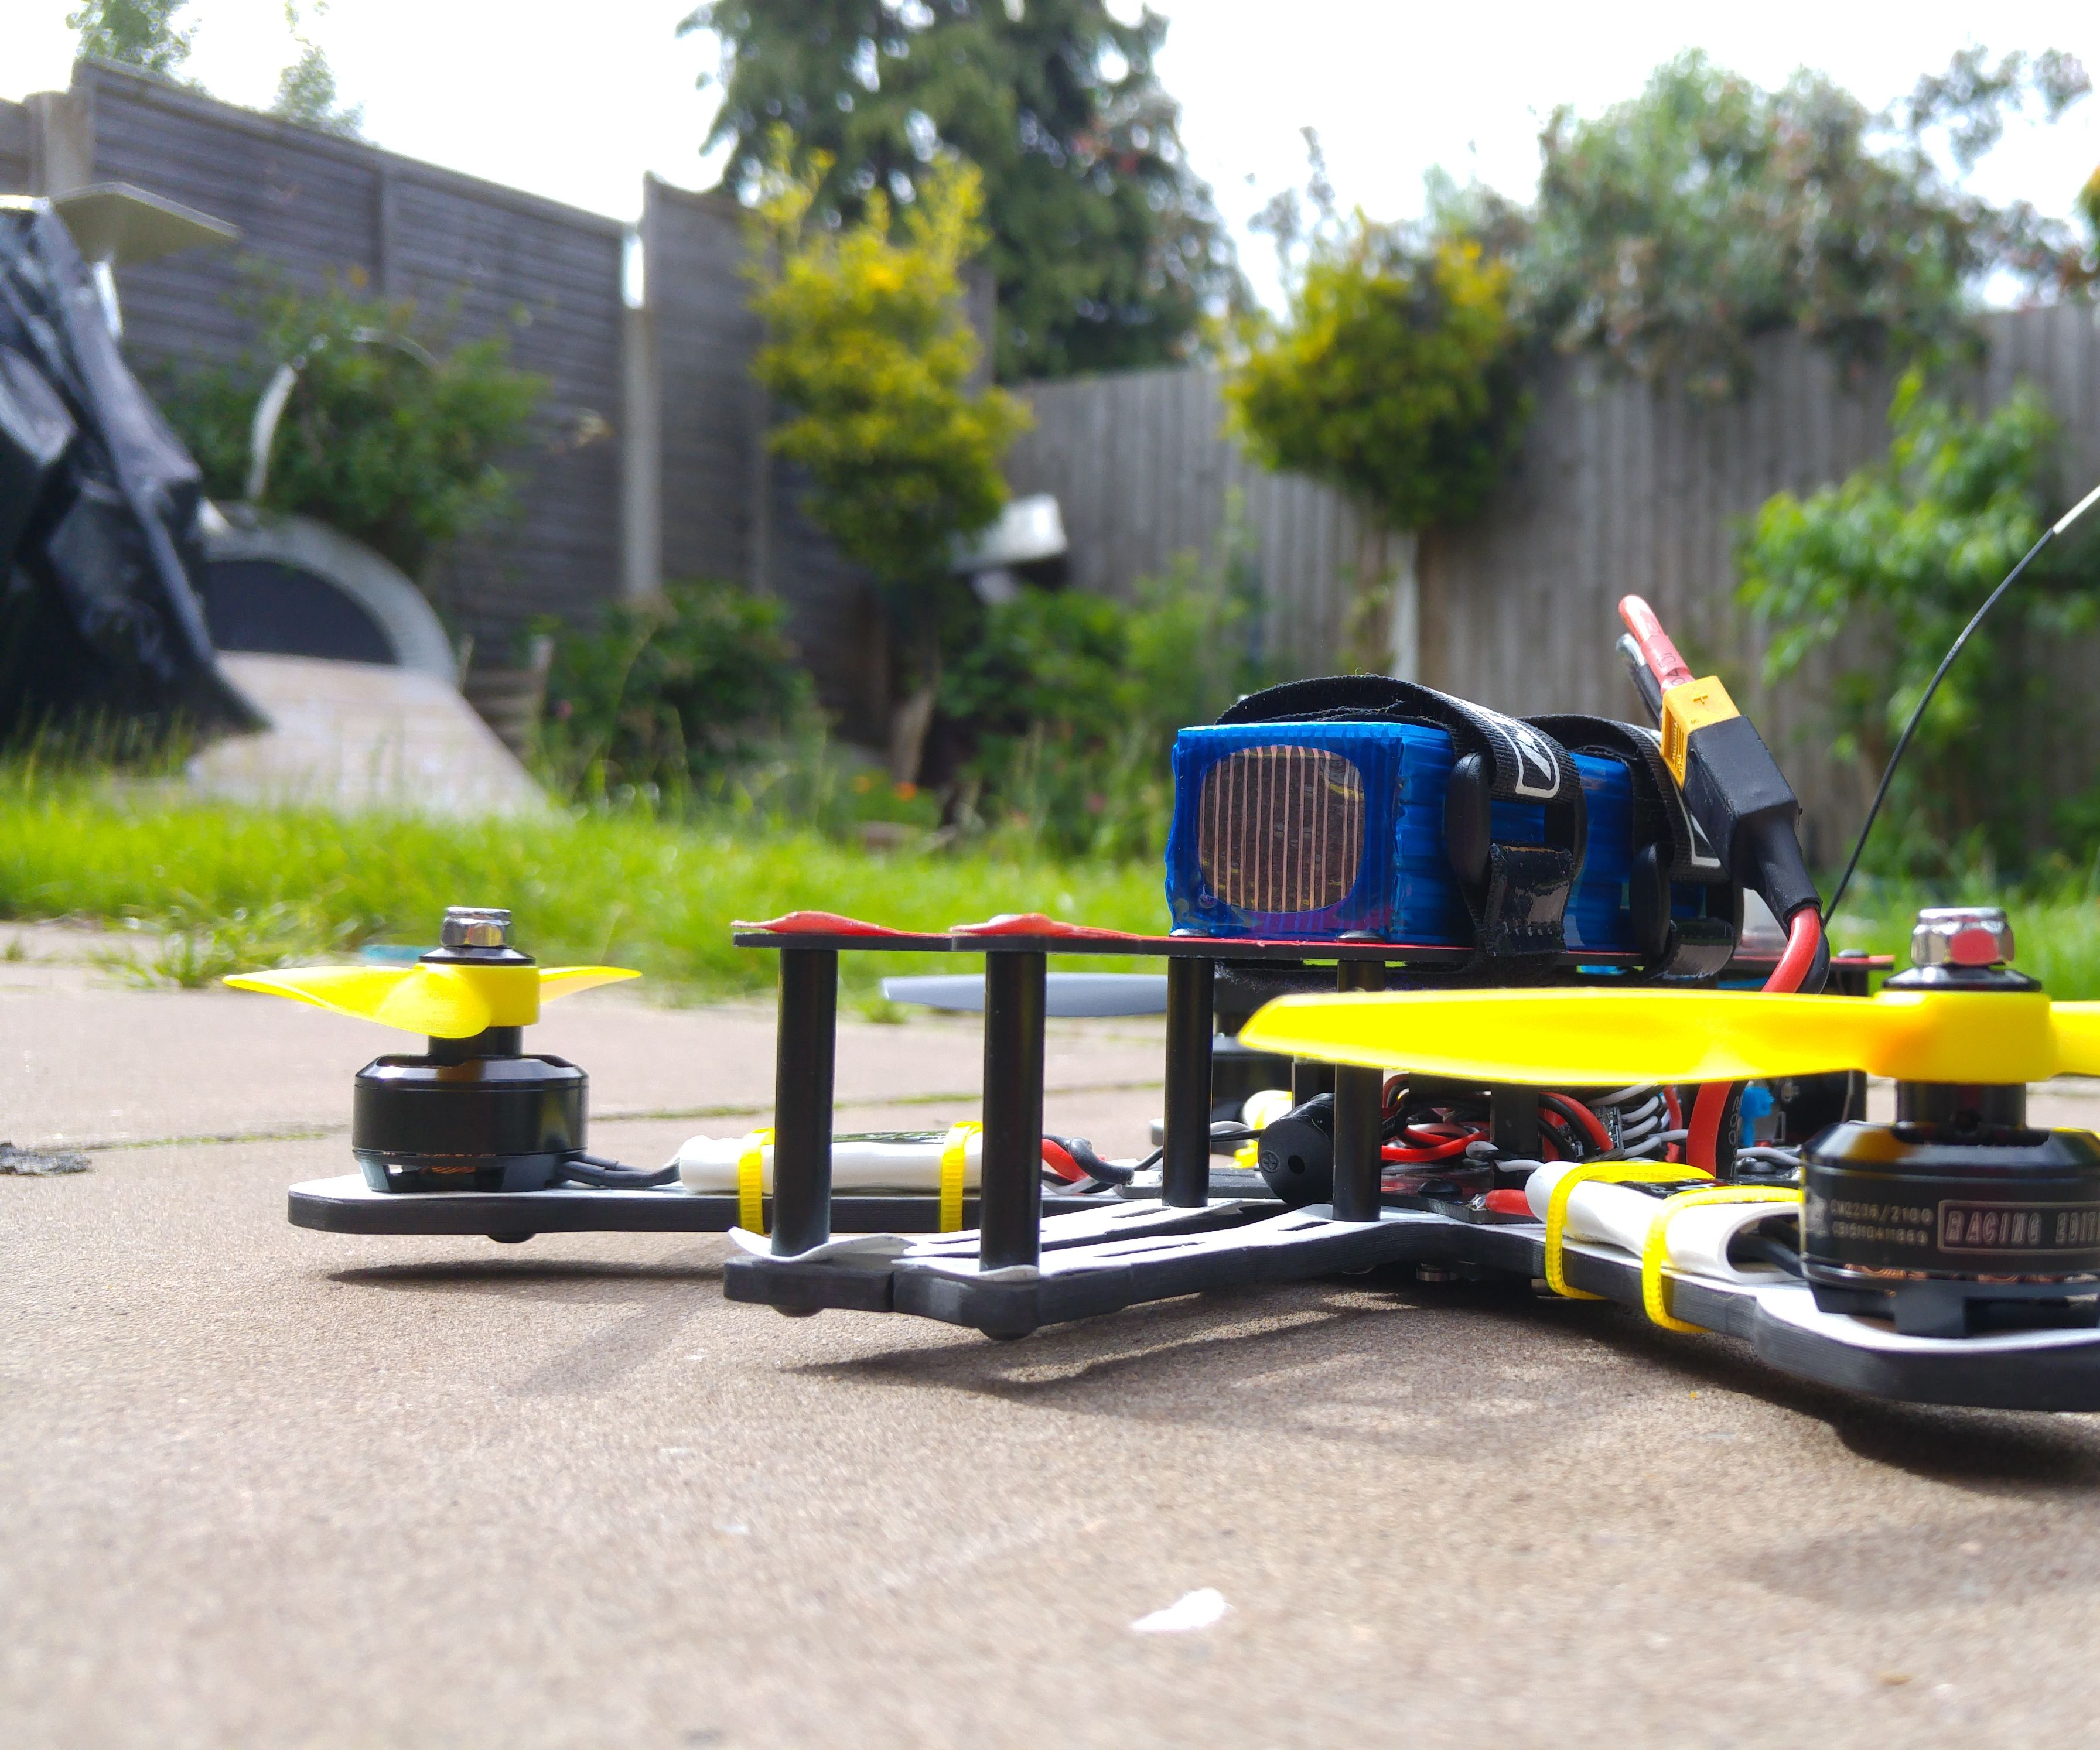 How to build the fastest quadcopter in 3 hours